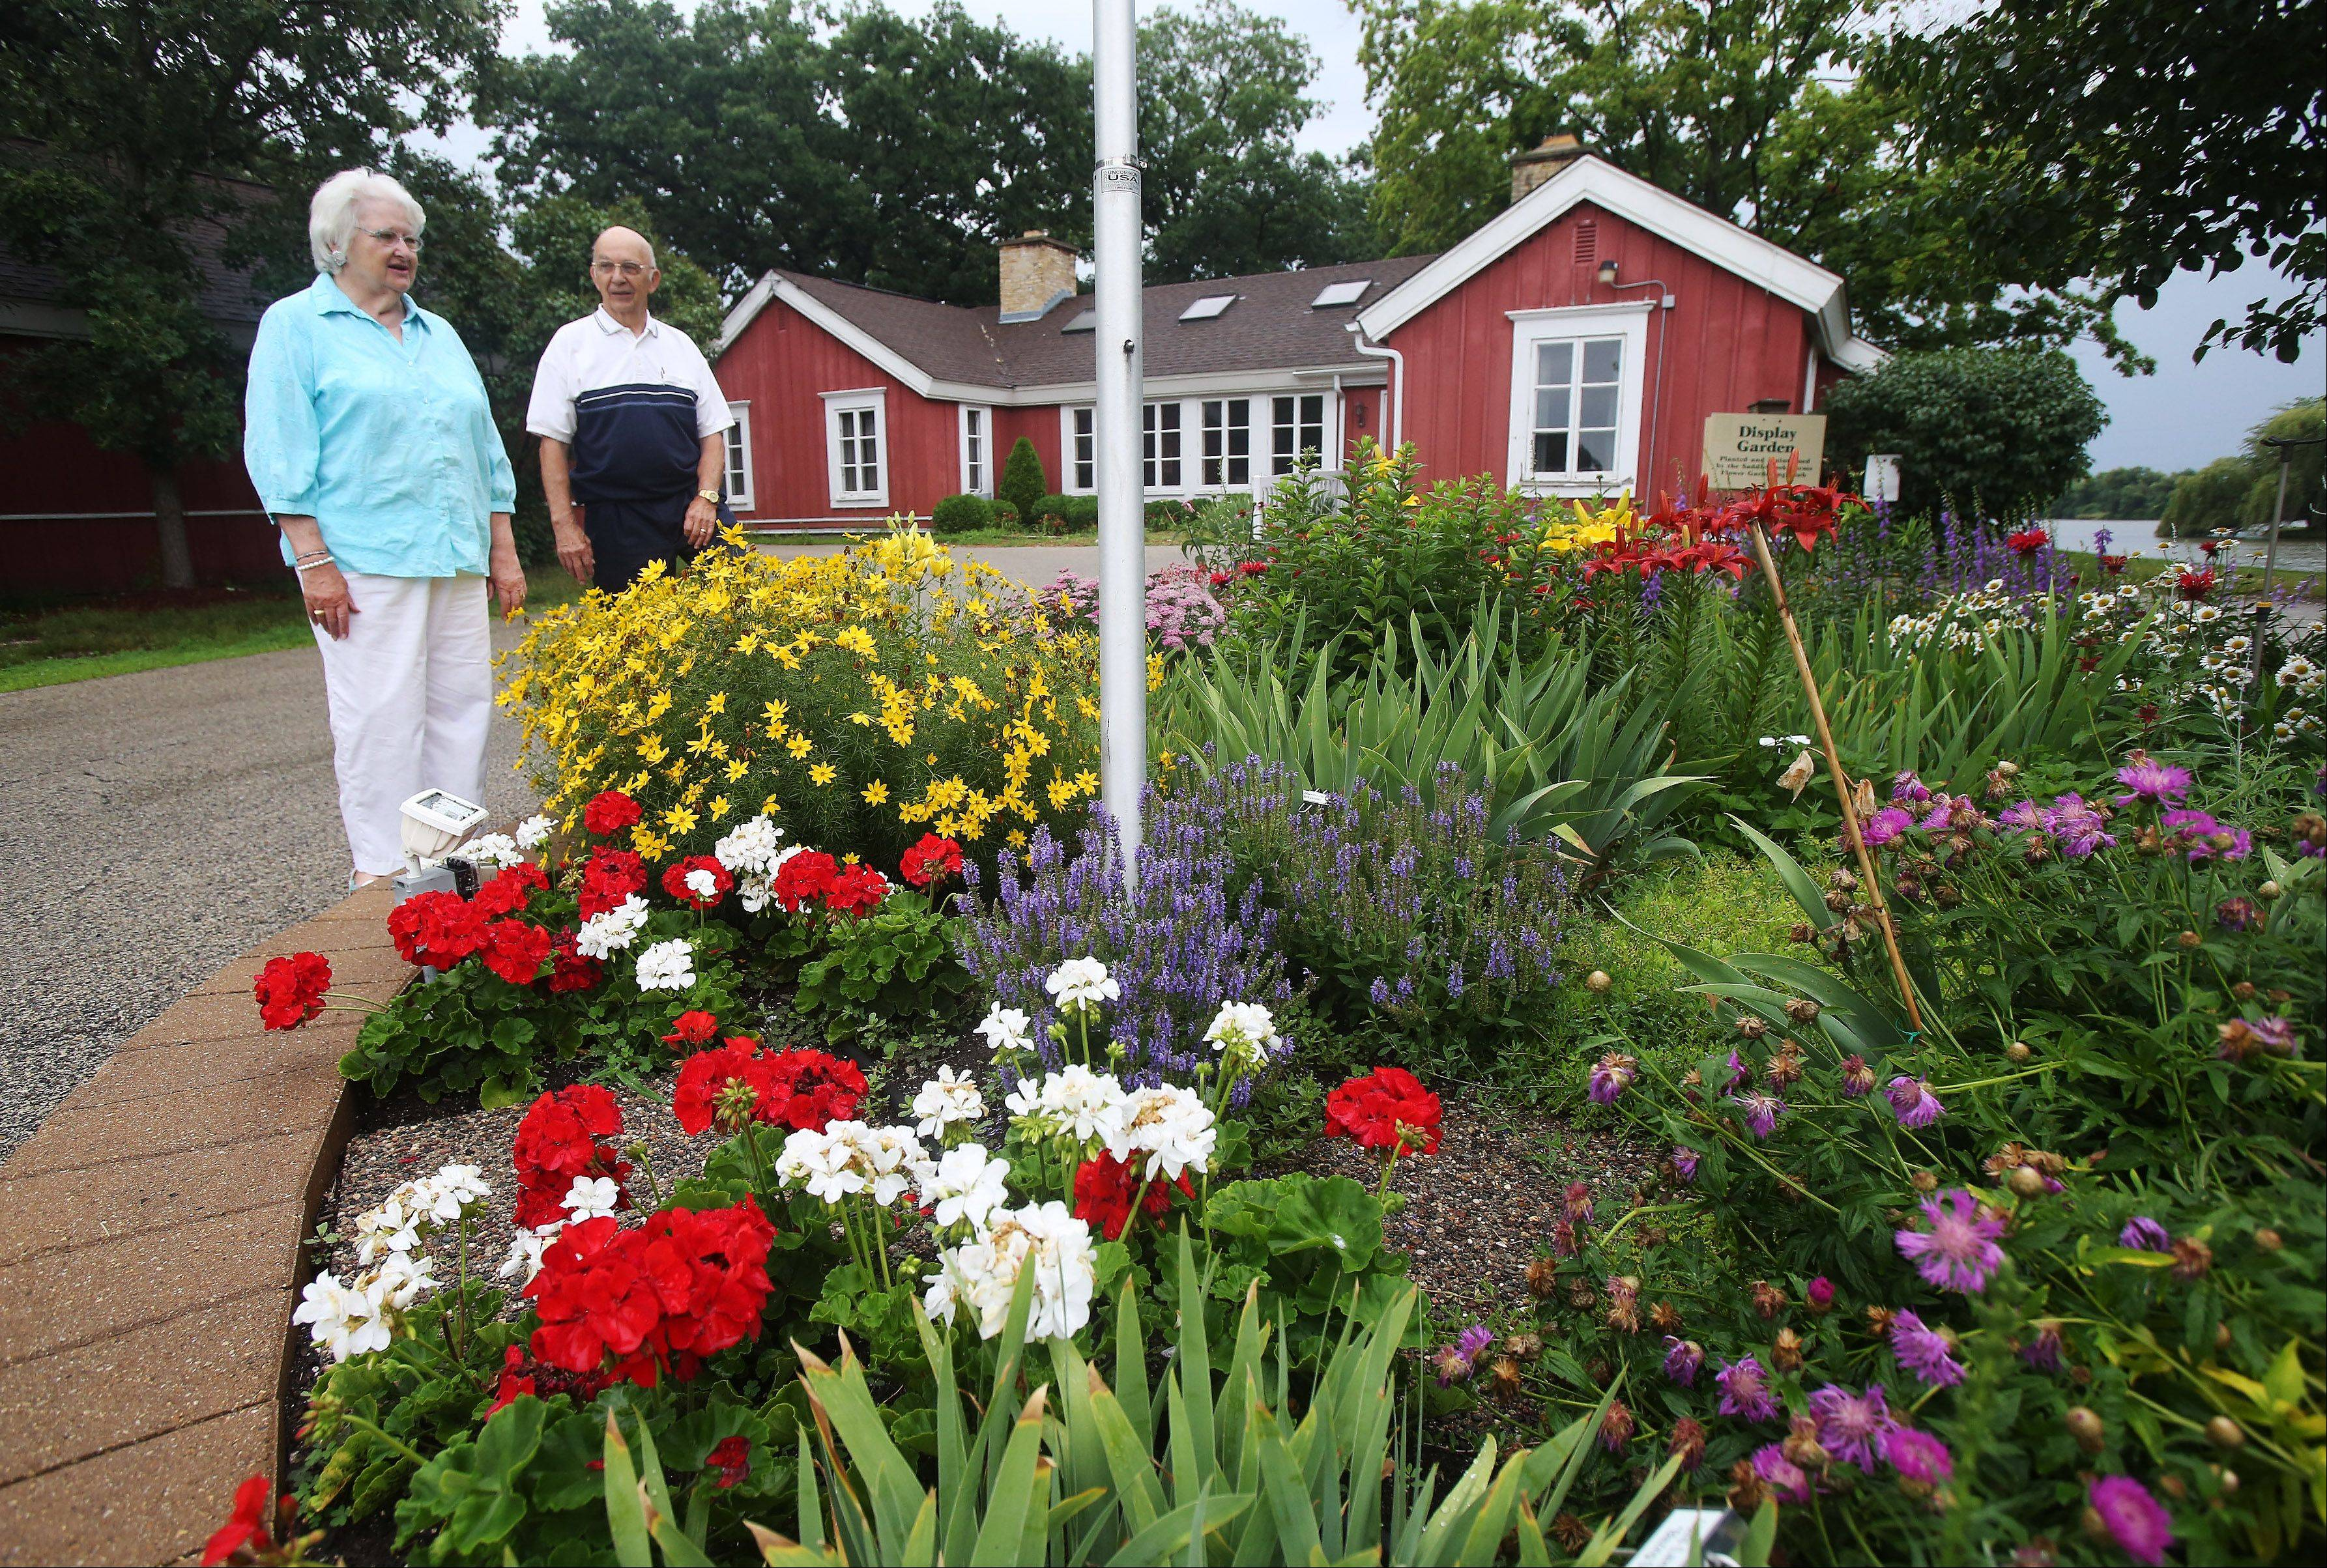 Pat Morelli, left, and Ron Barthuly look at the garden in front of the community center managed by the garden club at Saddlebrook Farms in Grayslake.